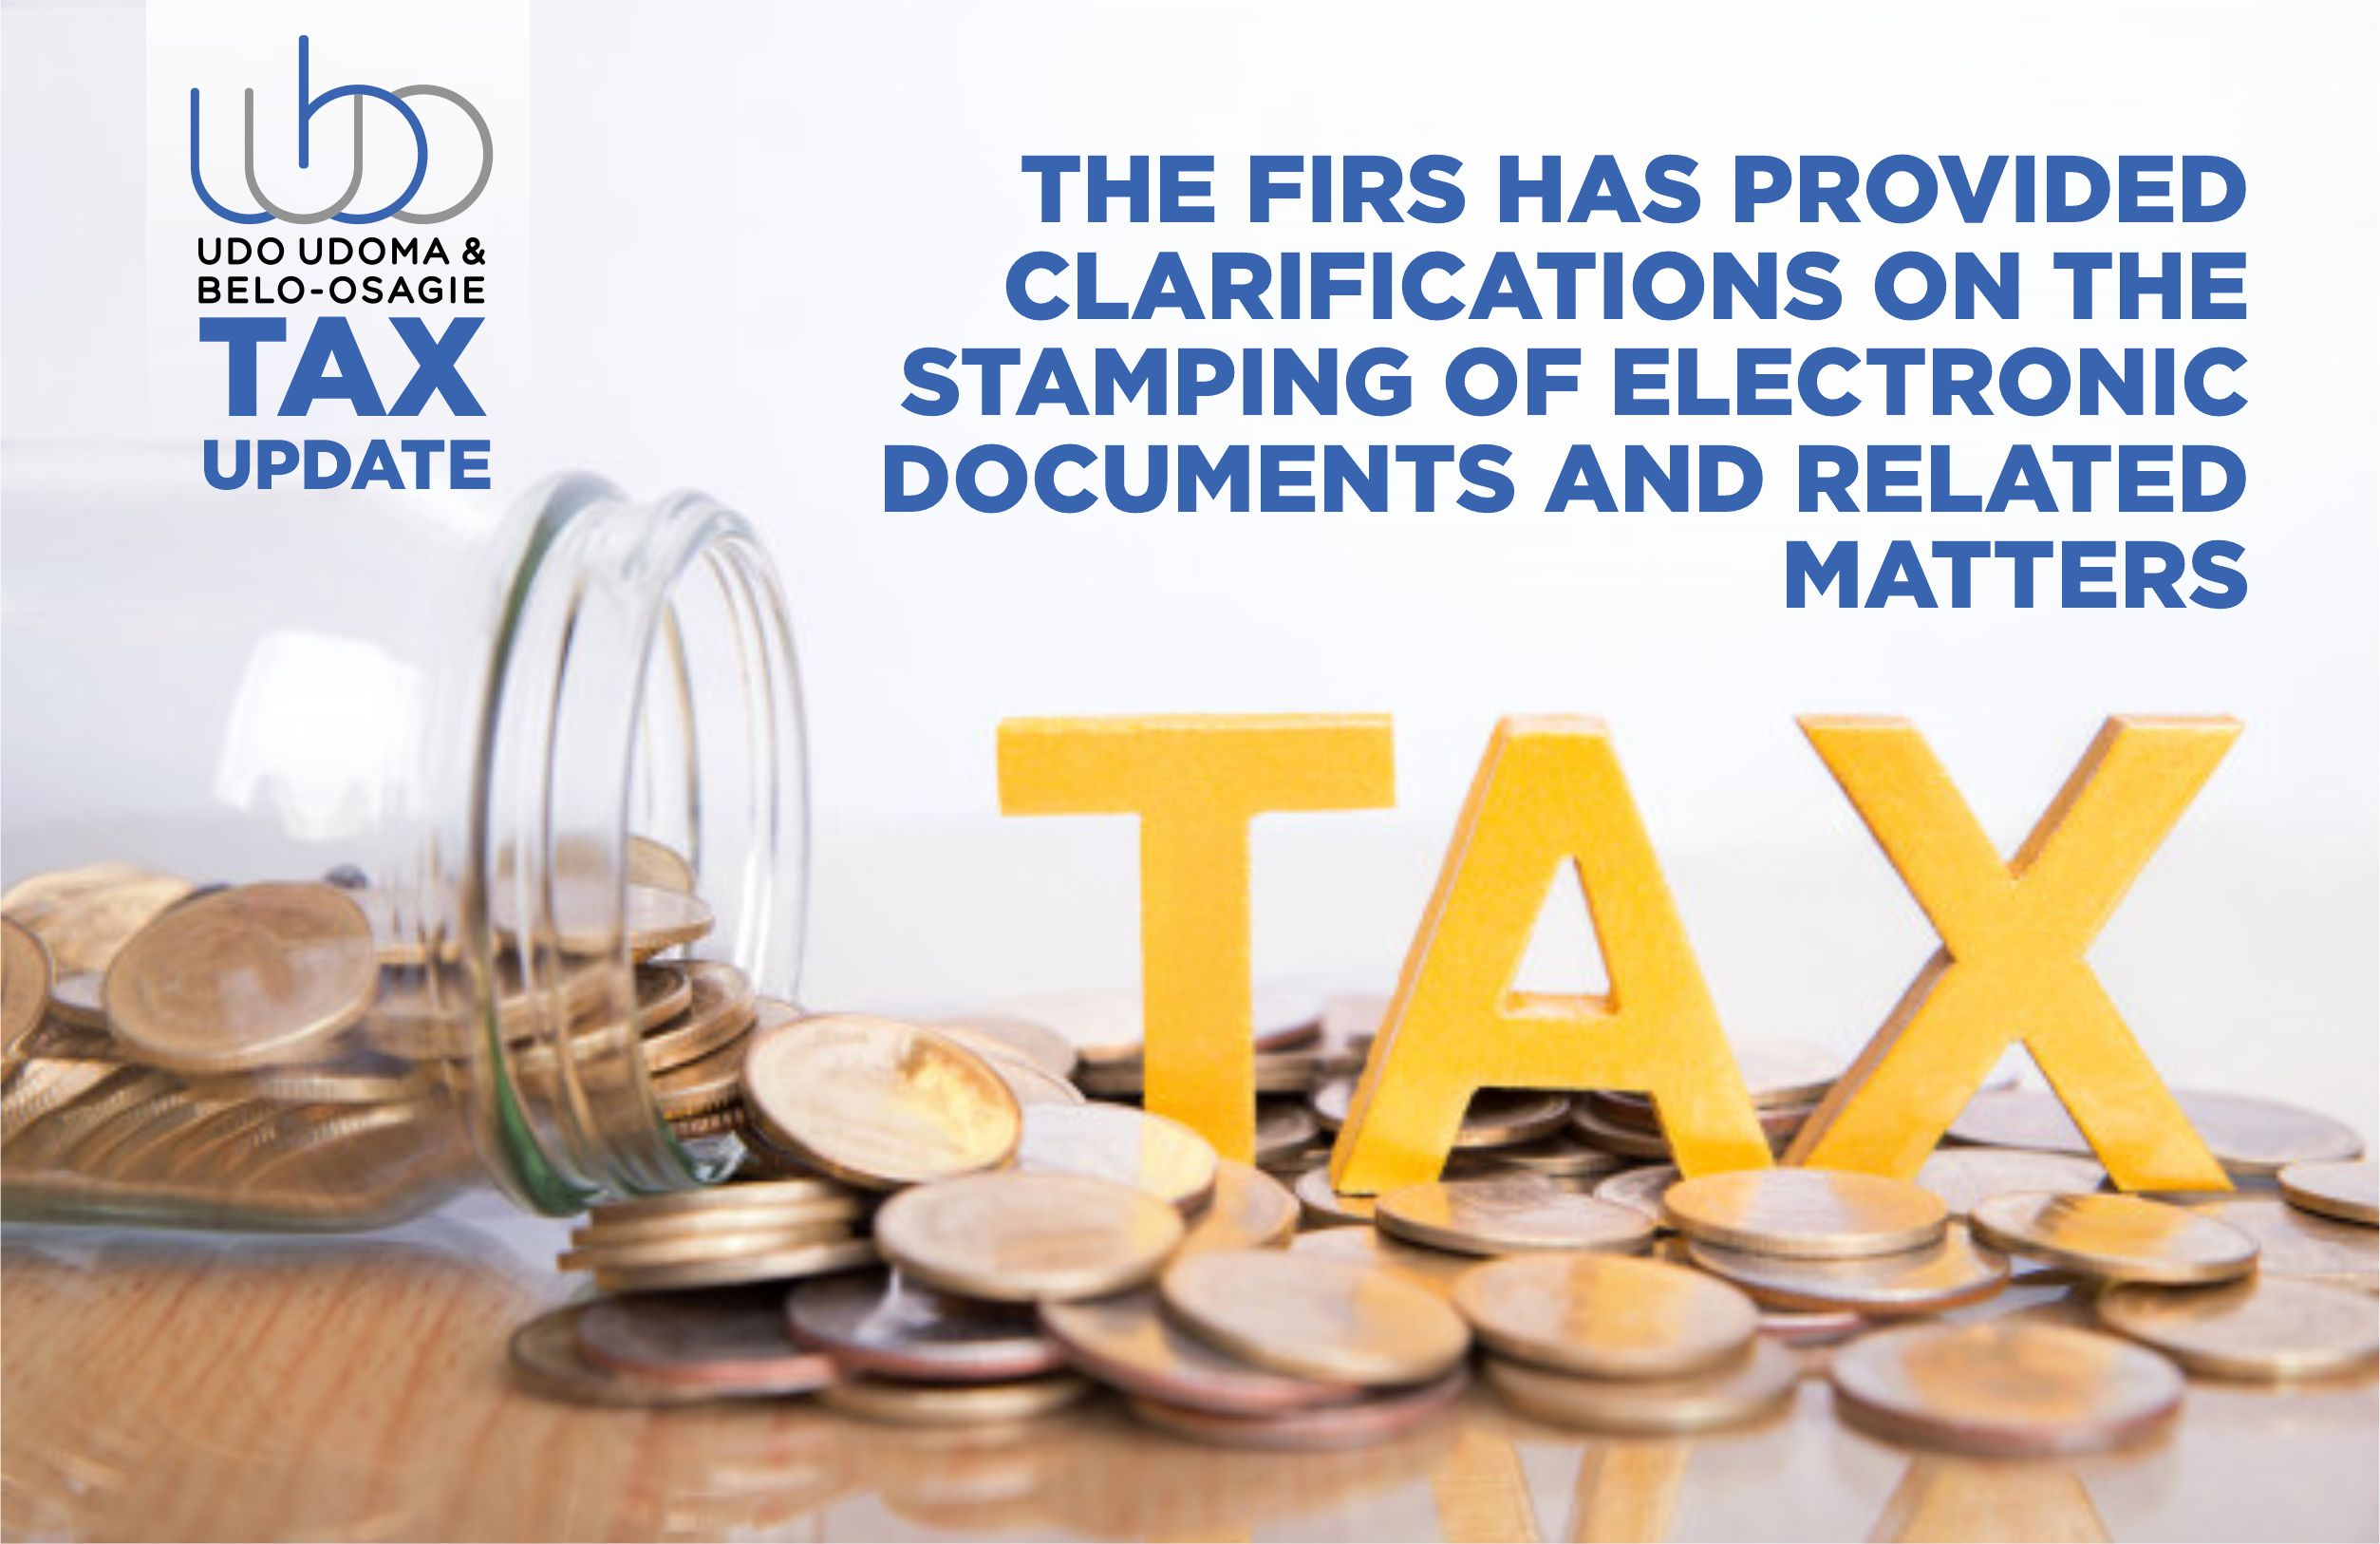 THE FIRS HAS PROVIDED CLARIFICATIONS ON THE STAMPING OF ELECTRONIC DOCUMENTS AND RELATED MATTERS